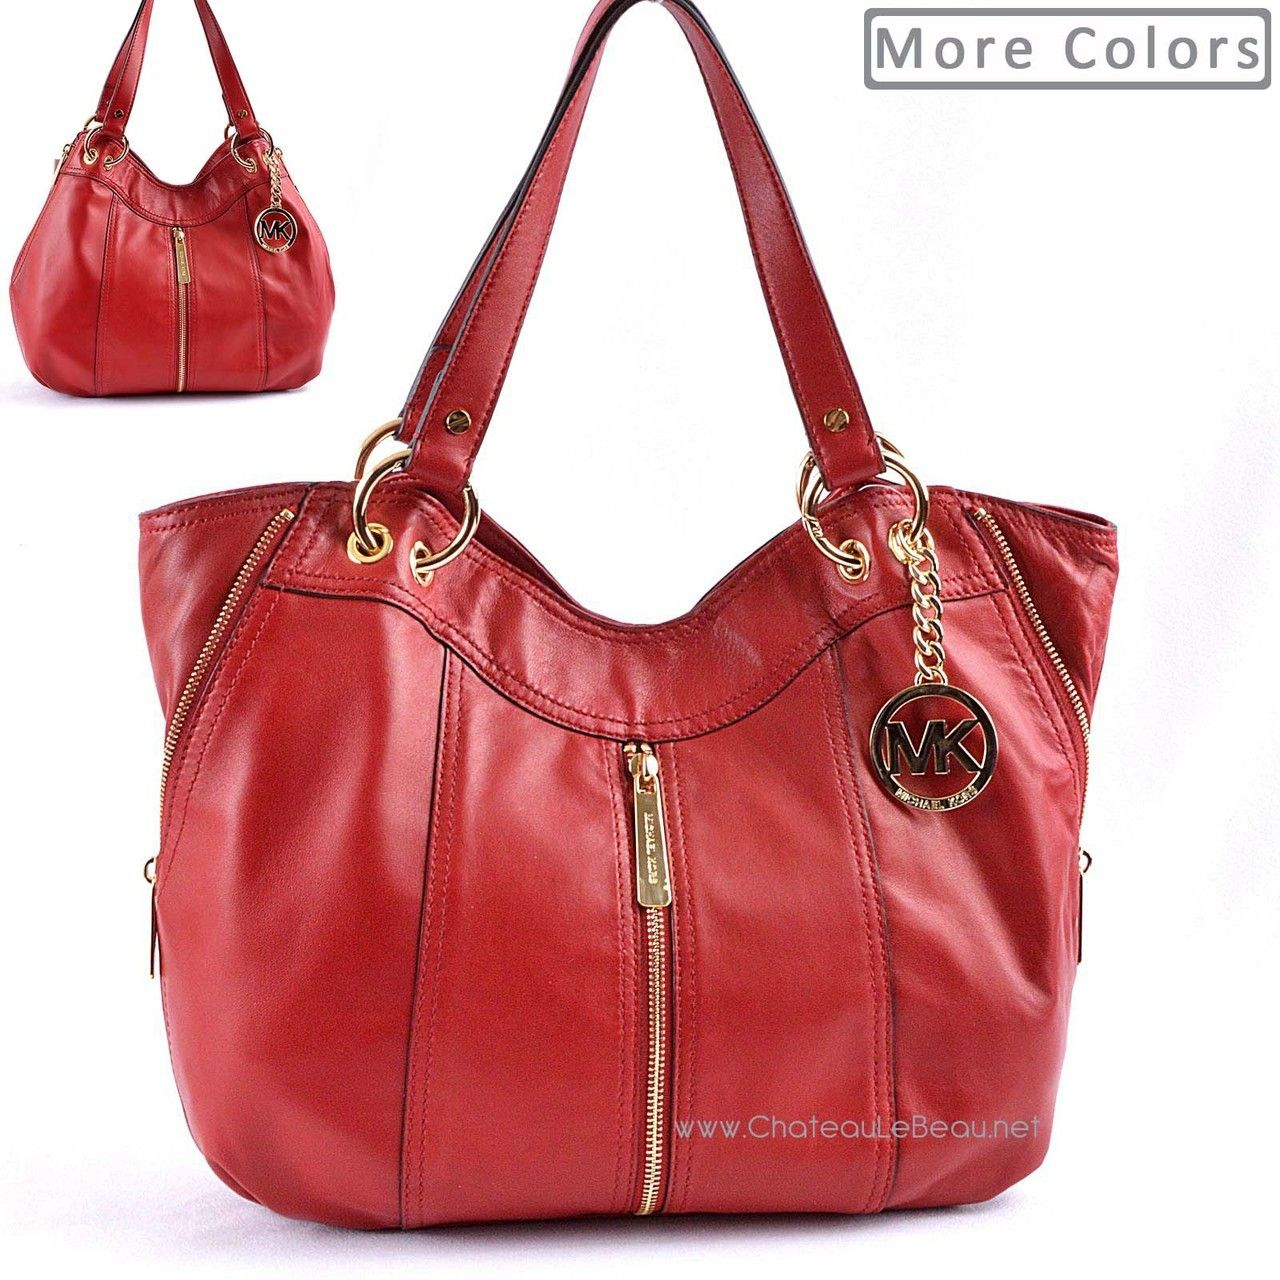 0ffd484c680e Chateau Le Beau - Michael Kors Moxley Medium Shoulder Tote Bag, $317.95  (http: